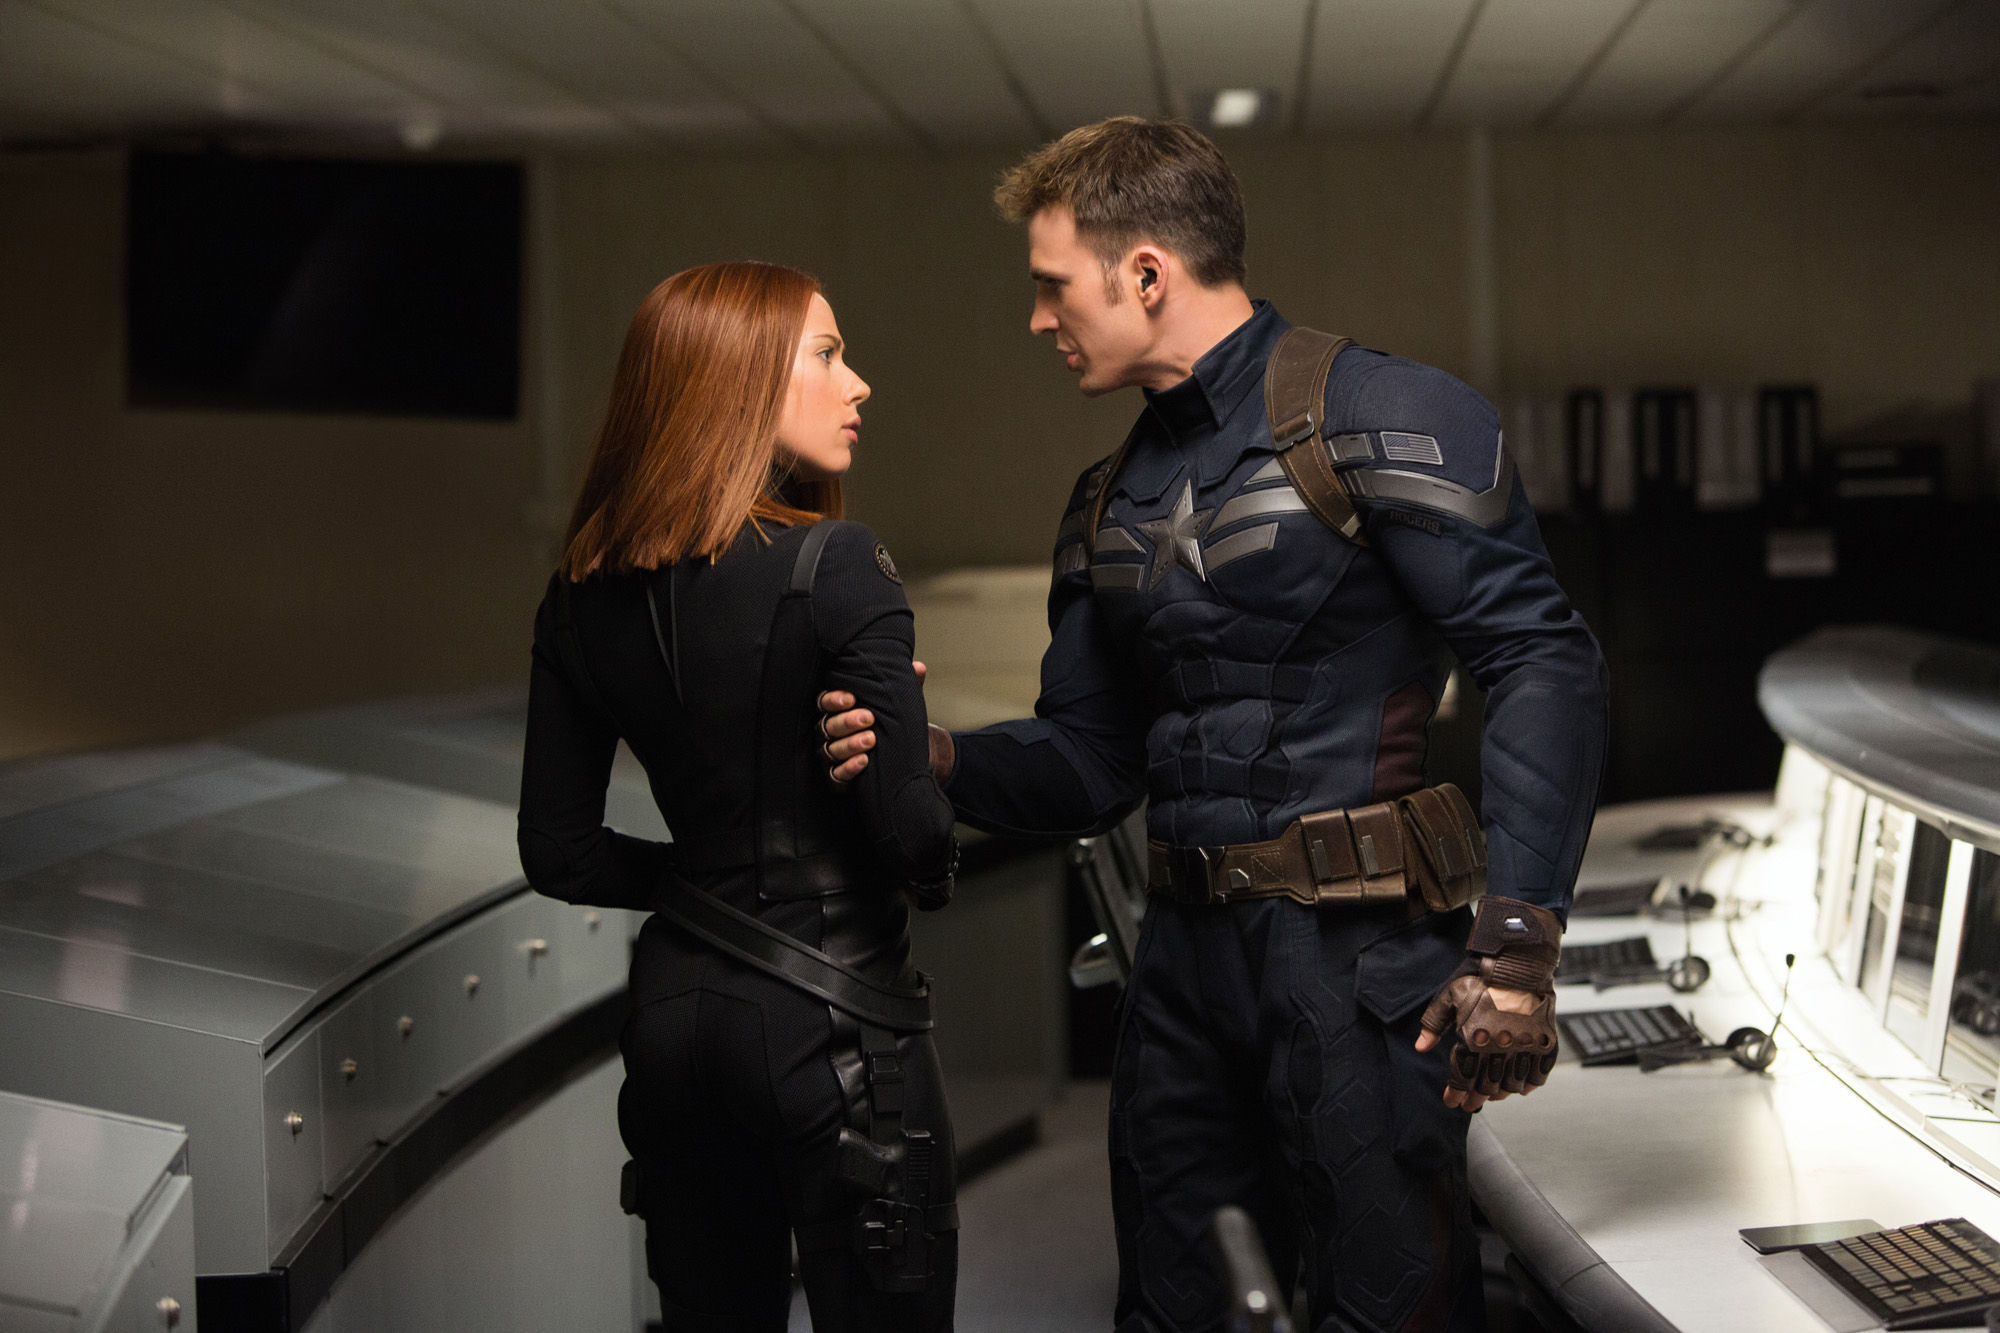 Captain-America-2-Official-Photo-Chris-Evans-Scarlet-Johansson-Costumes